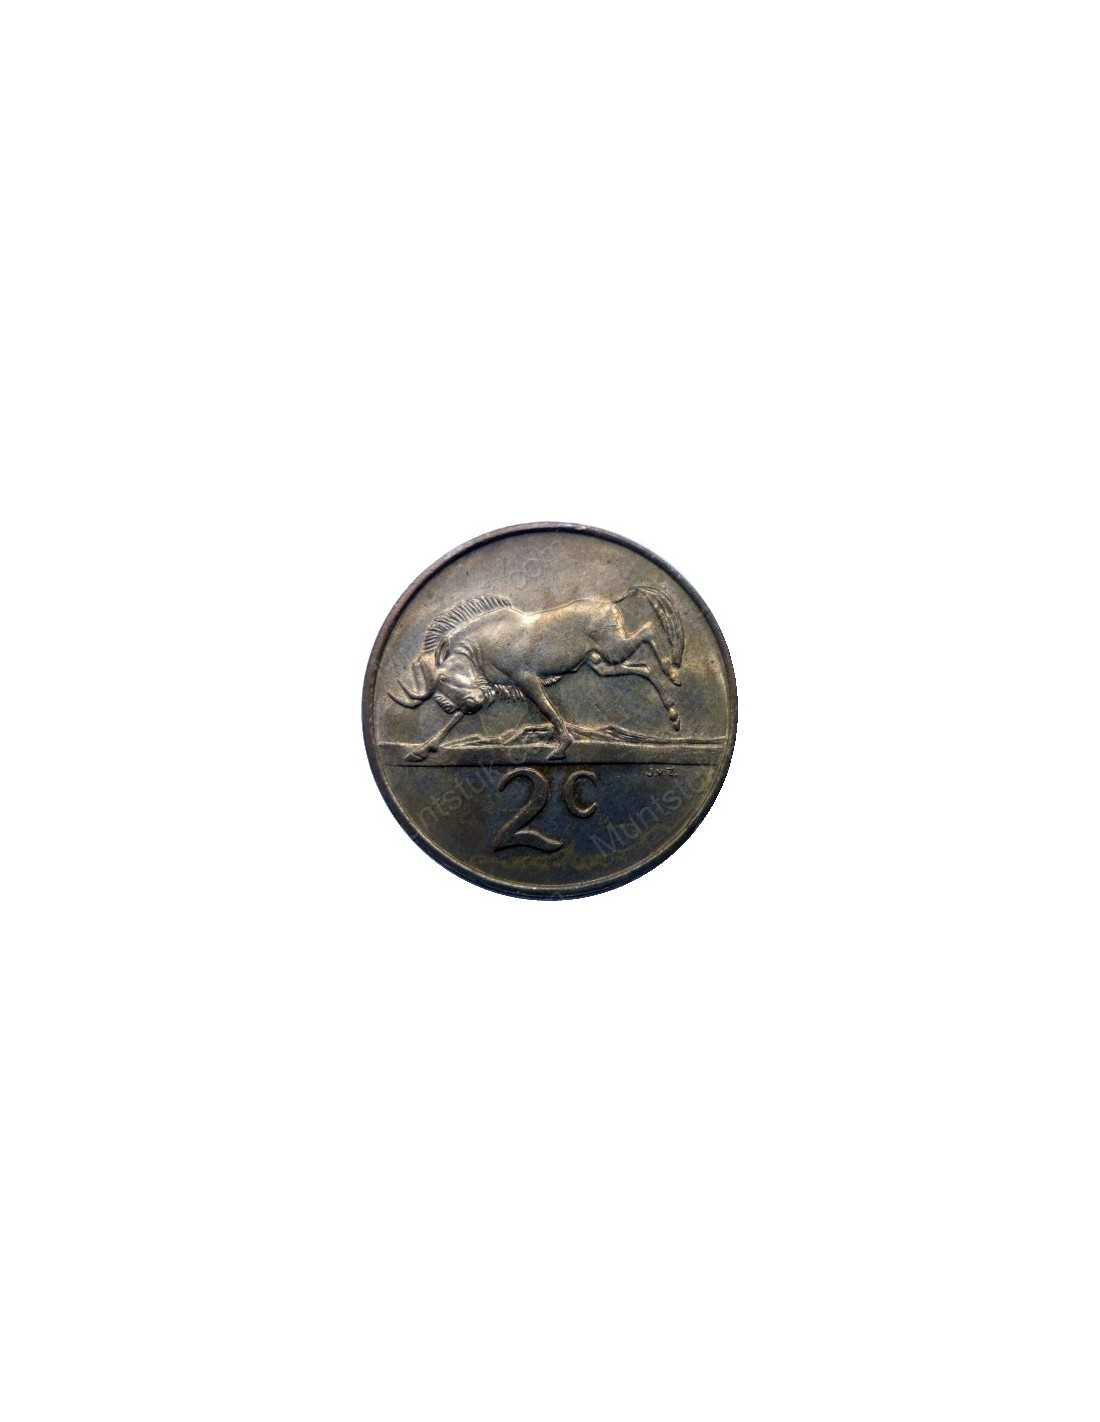 Two Cent English South Africa 1965 Bronze 713